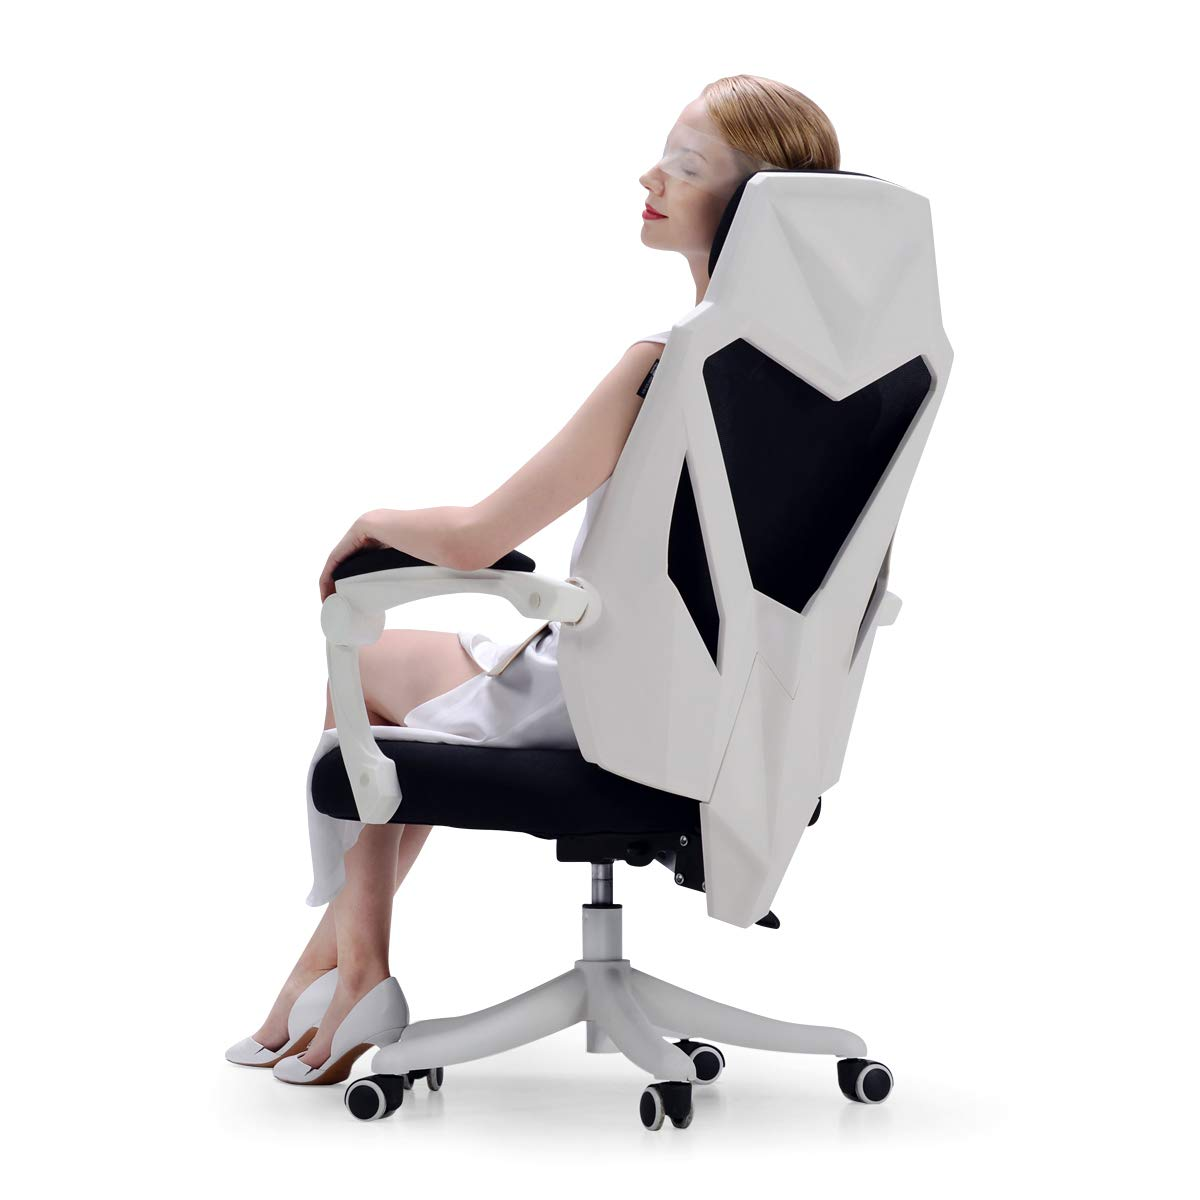 Hbada Office Computer Desk Chair - Ergonomic High-Back Swivel Task Gaming Chair - White